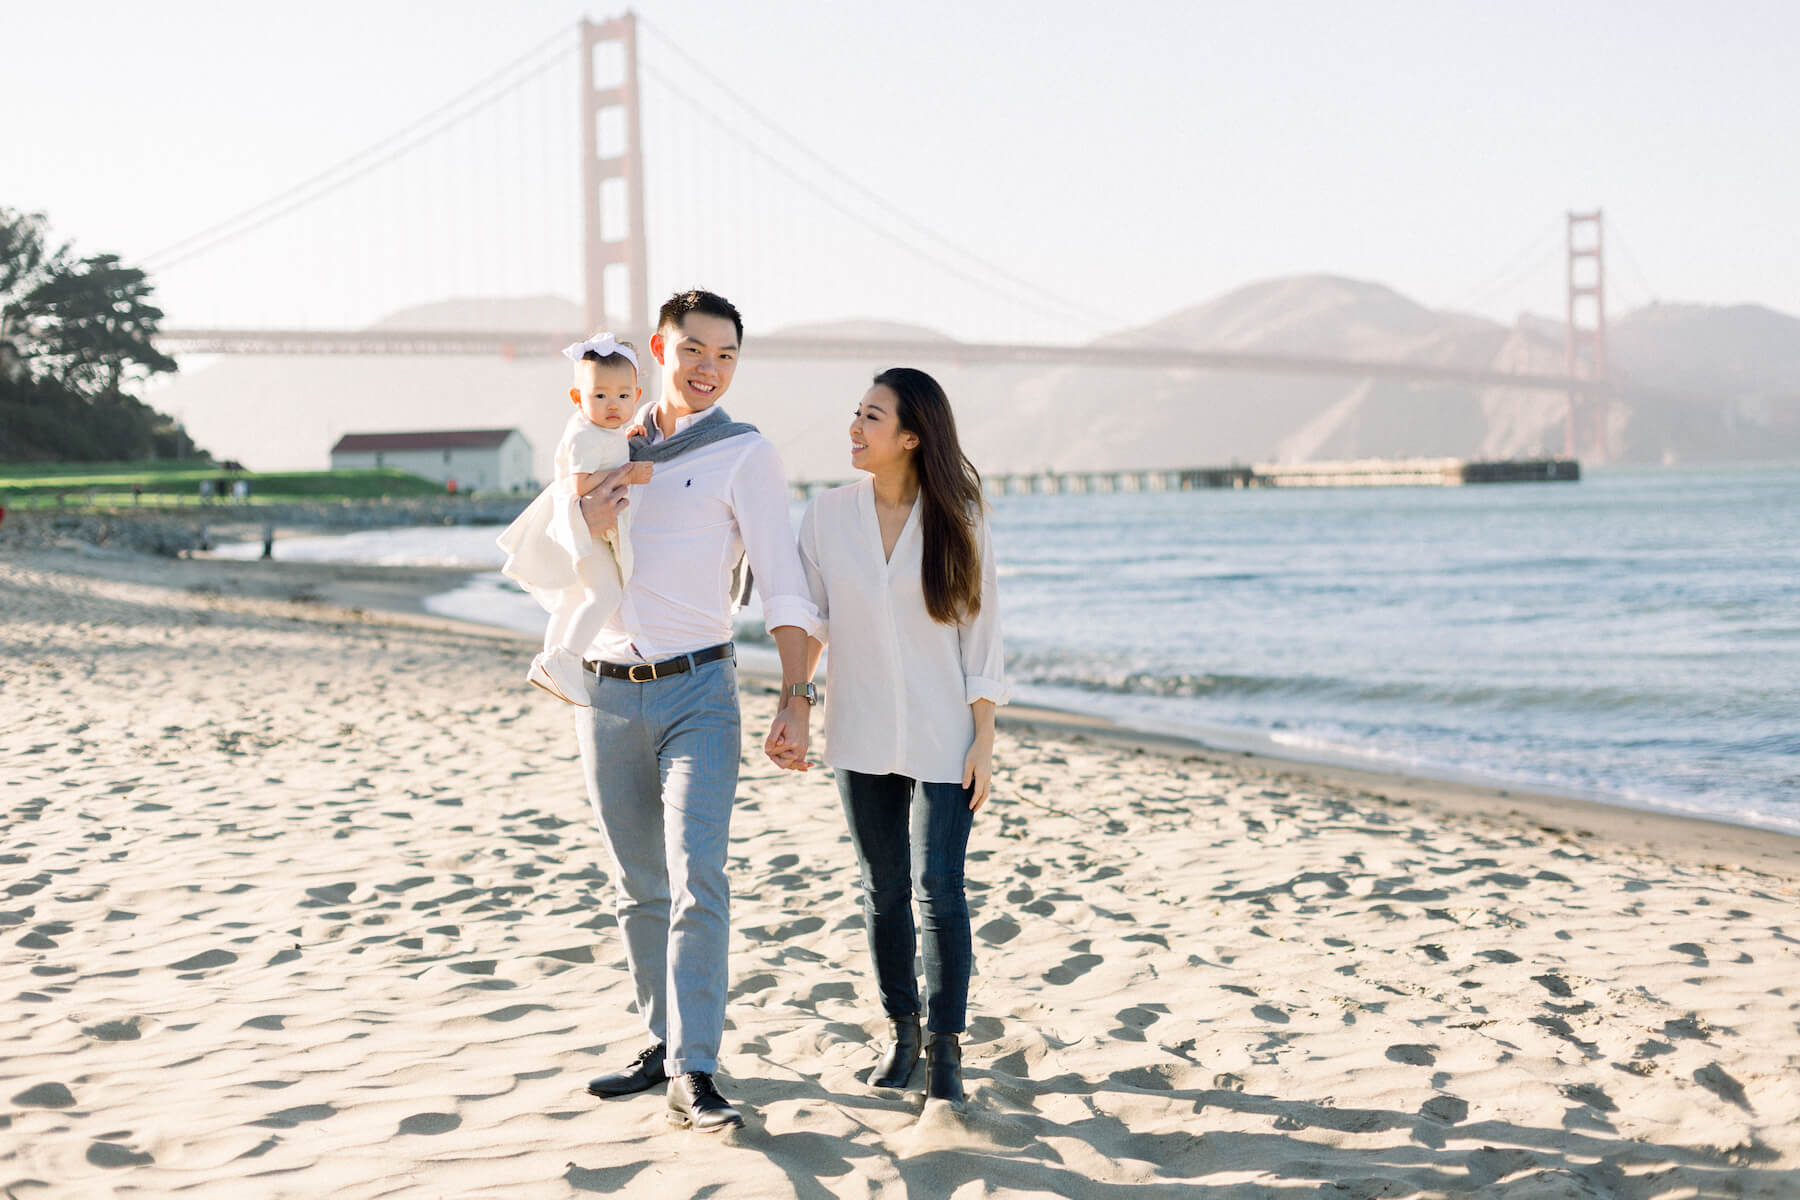 Hometown Family Photo Shoot in San Francisco on the beach